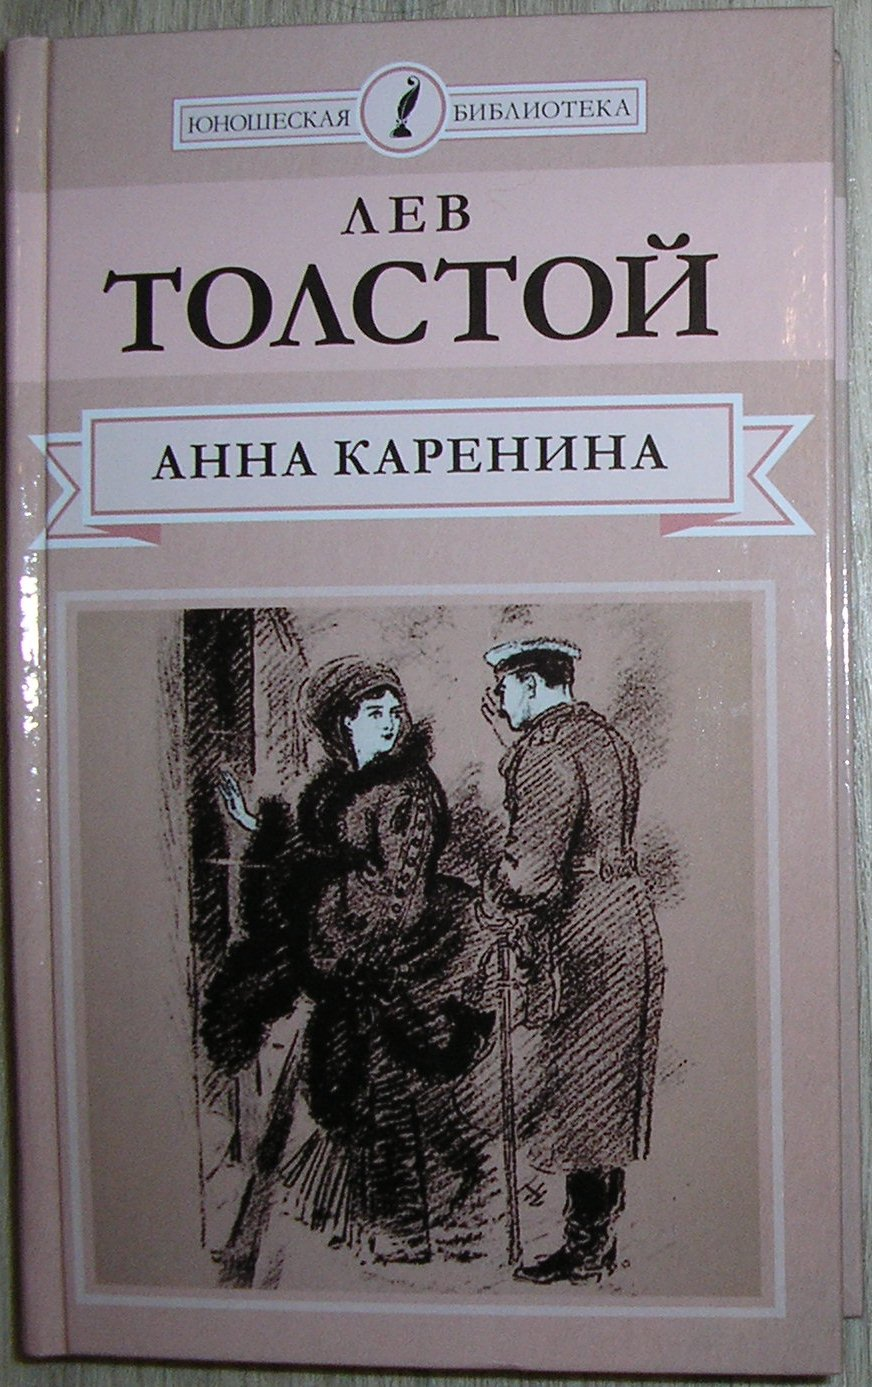 an analysis of the element of foreshadowing in anna karenina a novel by leo tolstoy Anna karenina by leo tolstoy is a novel about love and marriage among the russian aristocracy in the 1870s anna is young, beautiful woman married to a anna karenina essay anna and levin both experience epiphanies at the end of the novel their visions are very different though, which is ironic.